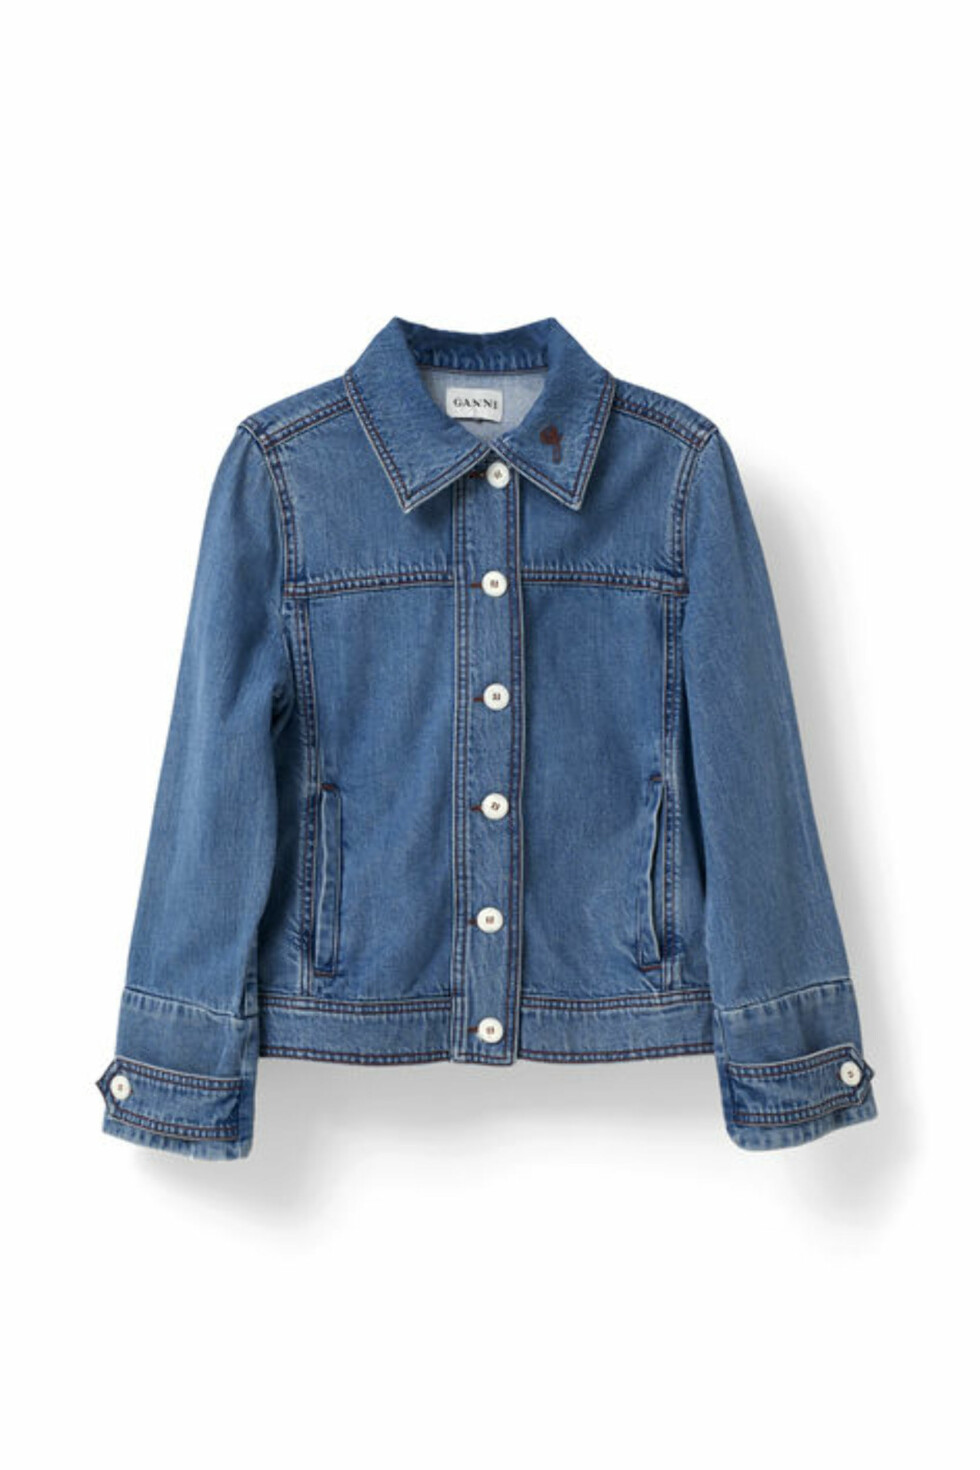 Denimjakke fra Ganni | kr 1469 | http://www.ganni.com/shop/coats-and-jackets/benedict-denim-jacket/F1736.html?dwvar_F1736_color=Denim